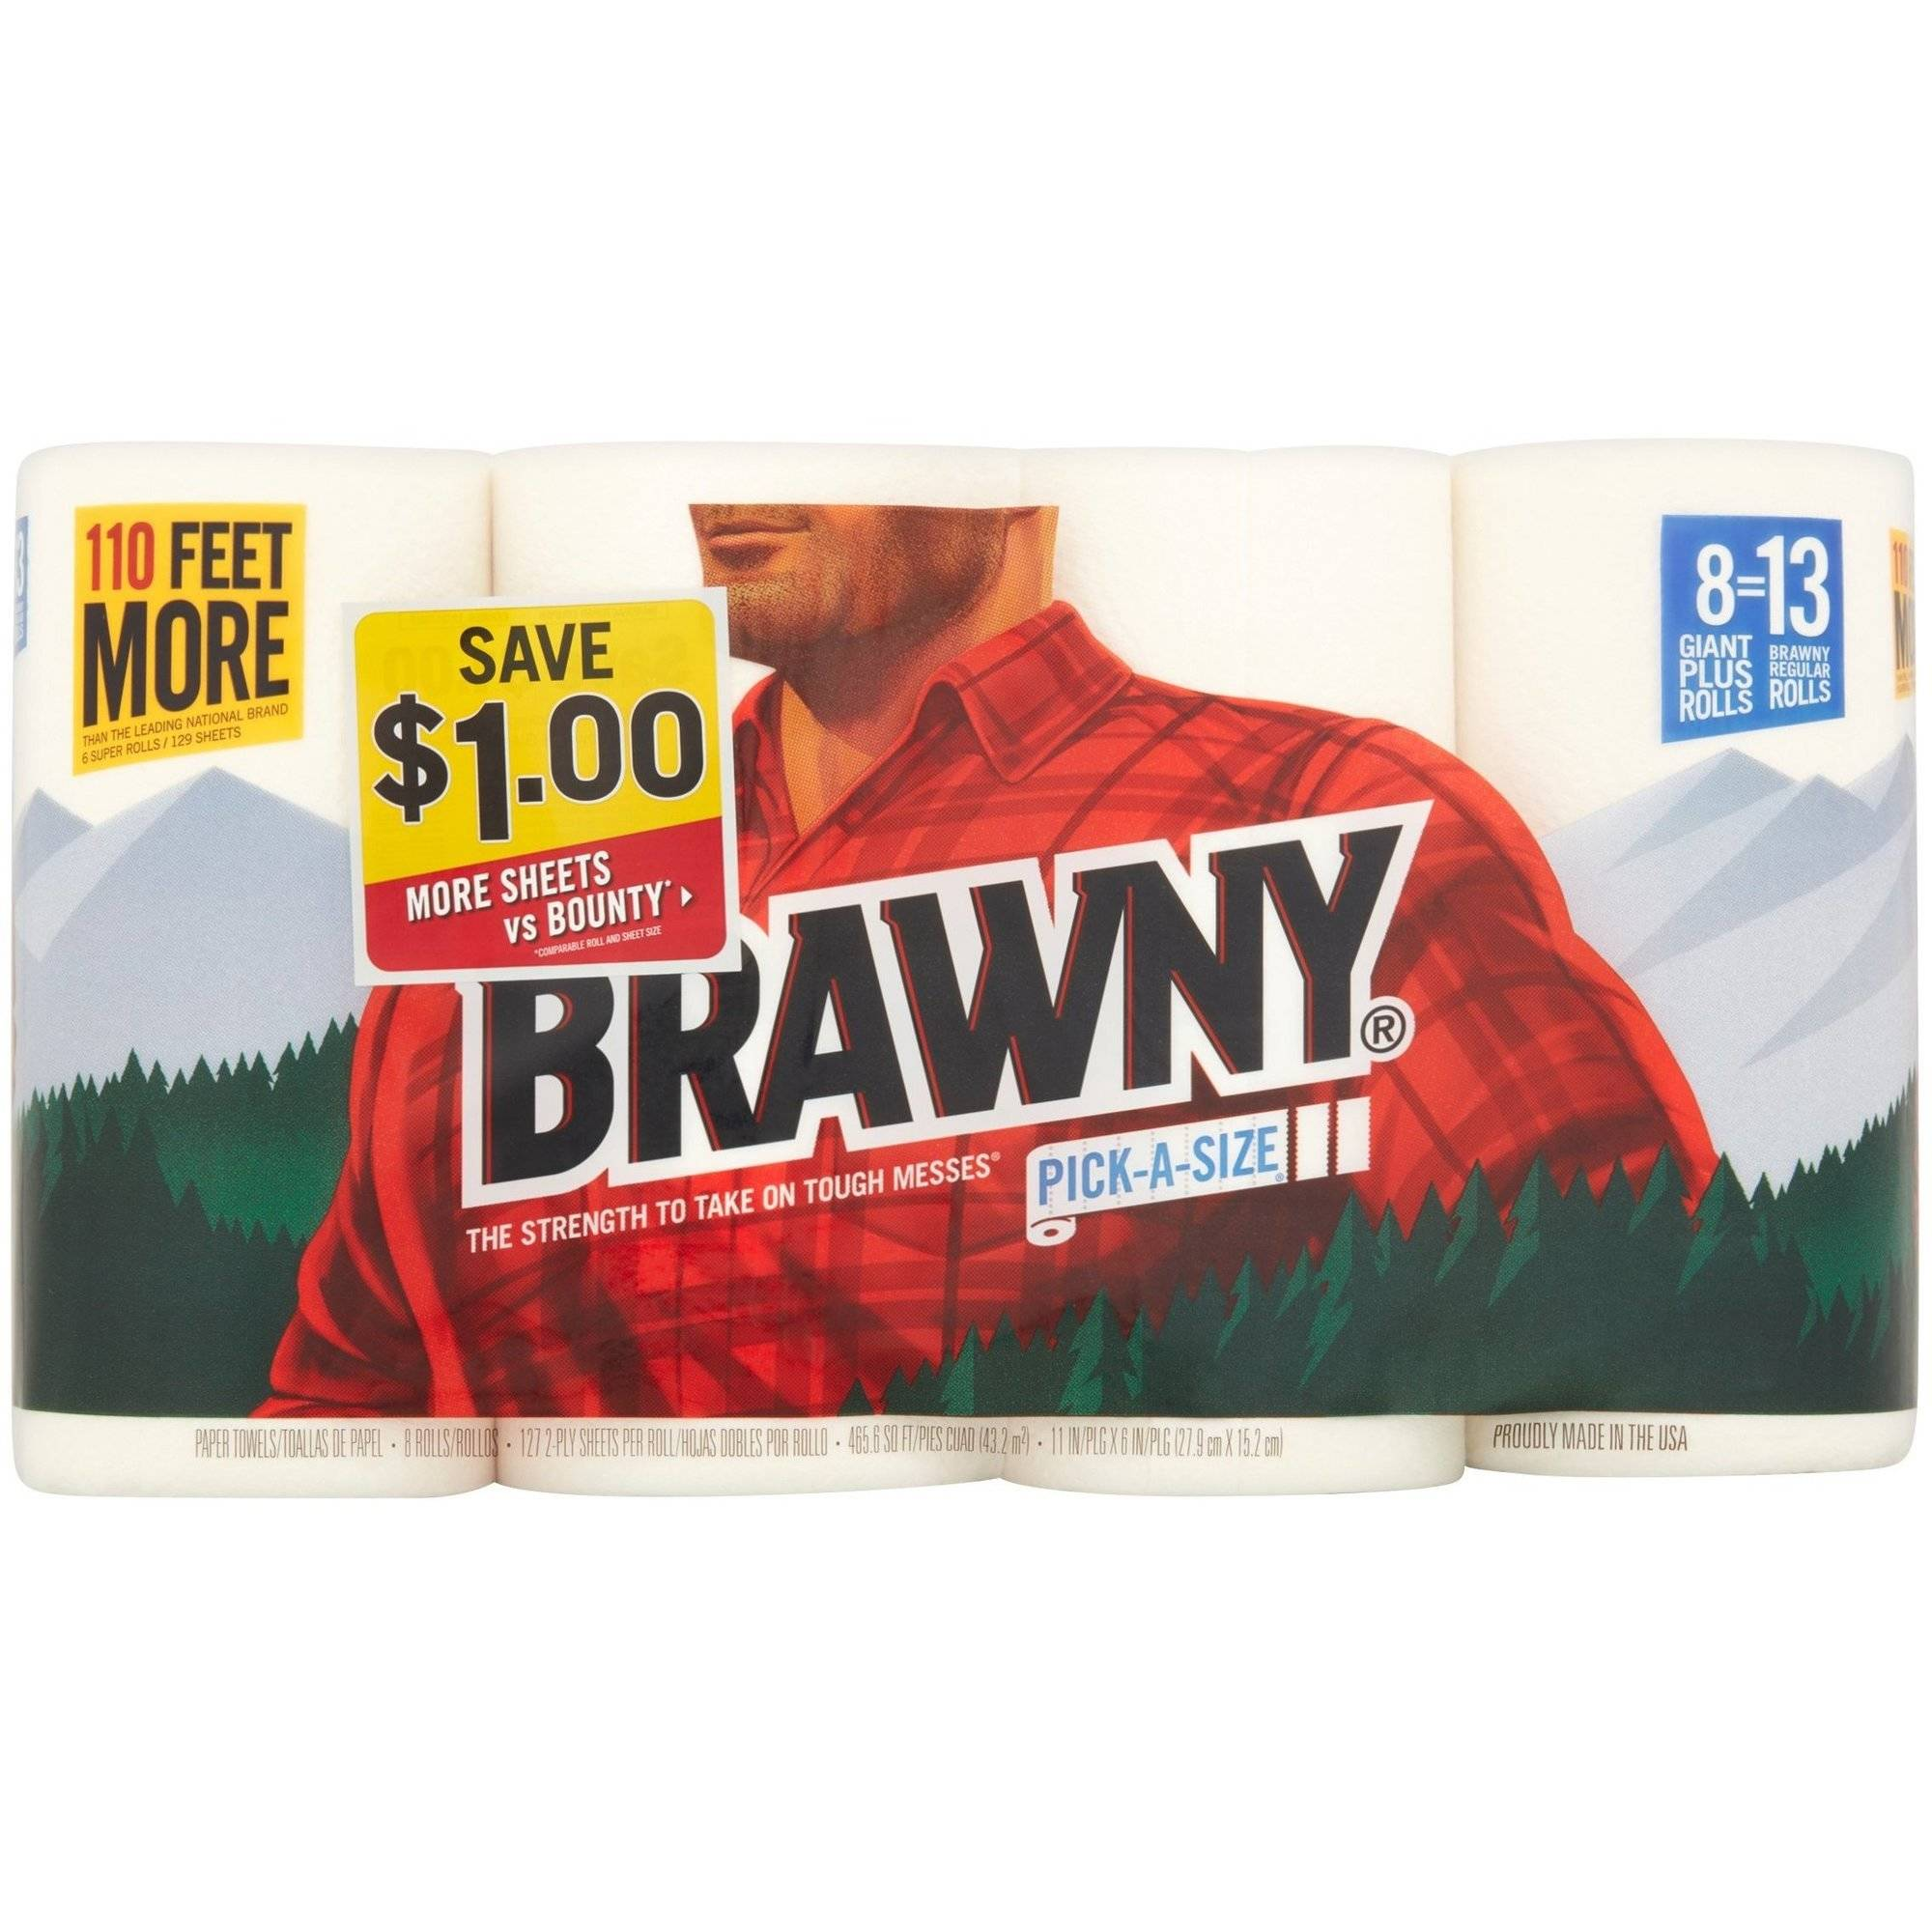 Brawny Pick-a-Size Giant Plus Roll Paper Towels, 127 sheets, 8 rolls